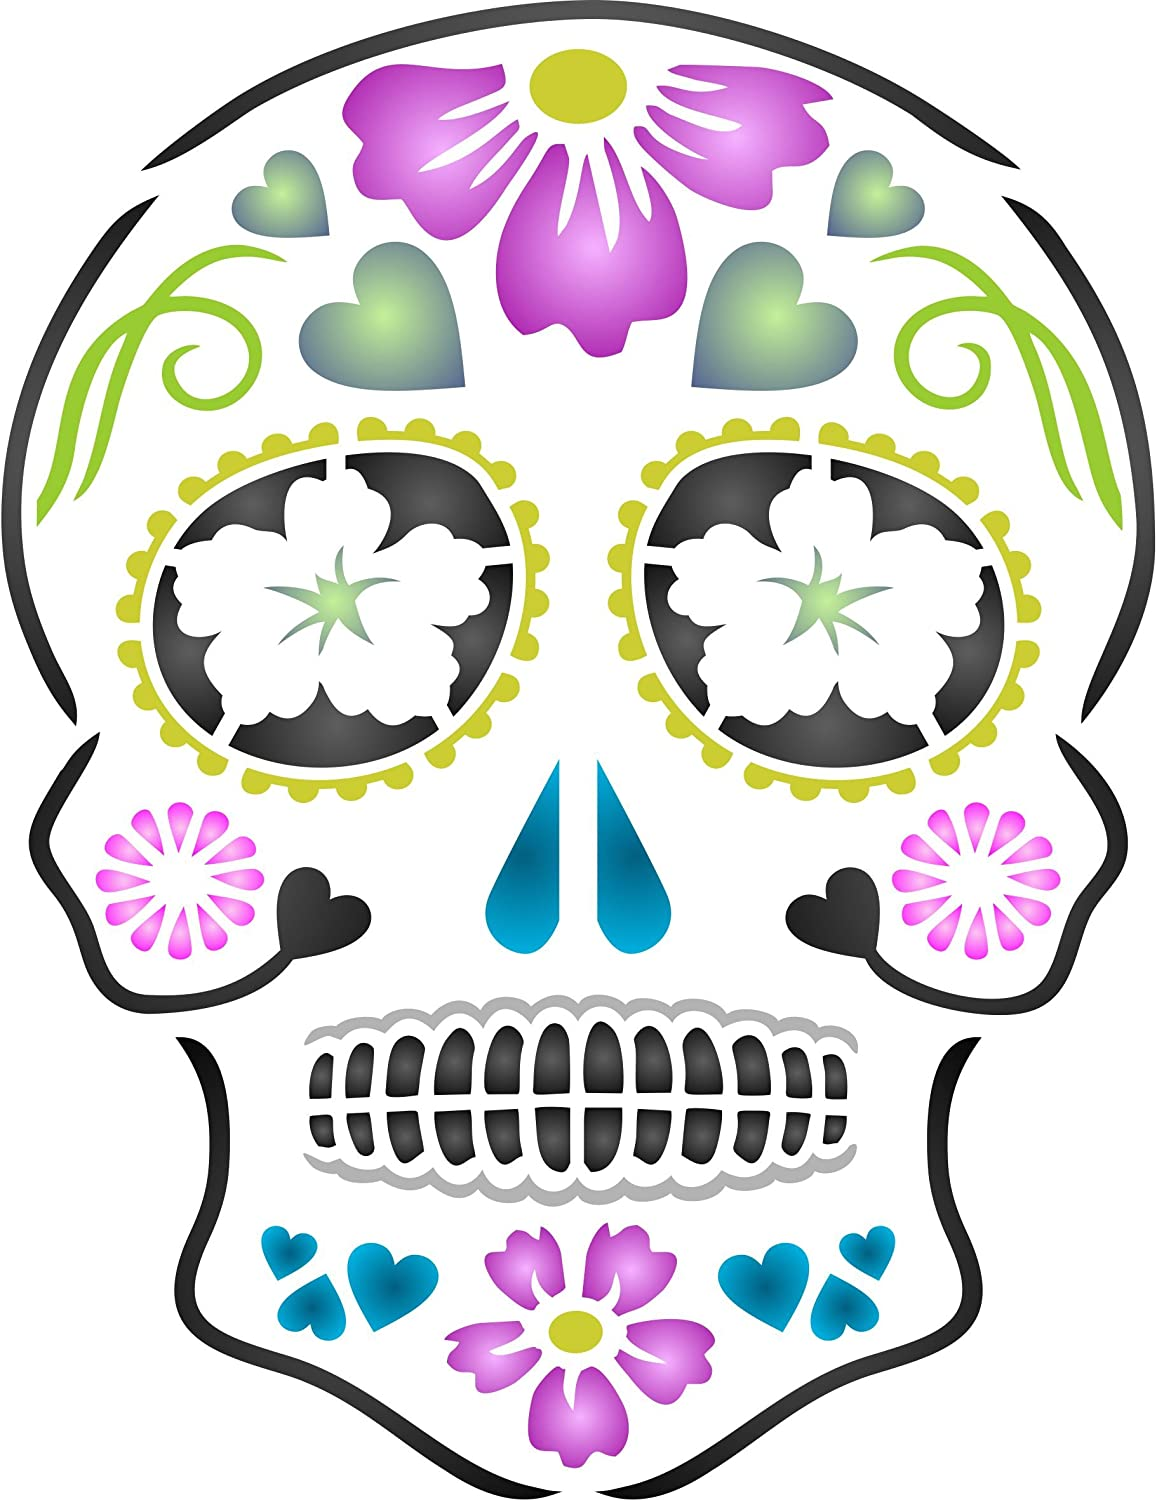 Amazon Com Day Of The Dead Sugar Skull Stencil 5 X 6 5 Inch S Halloween Decor Stencils For Painting Template